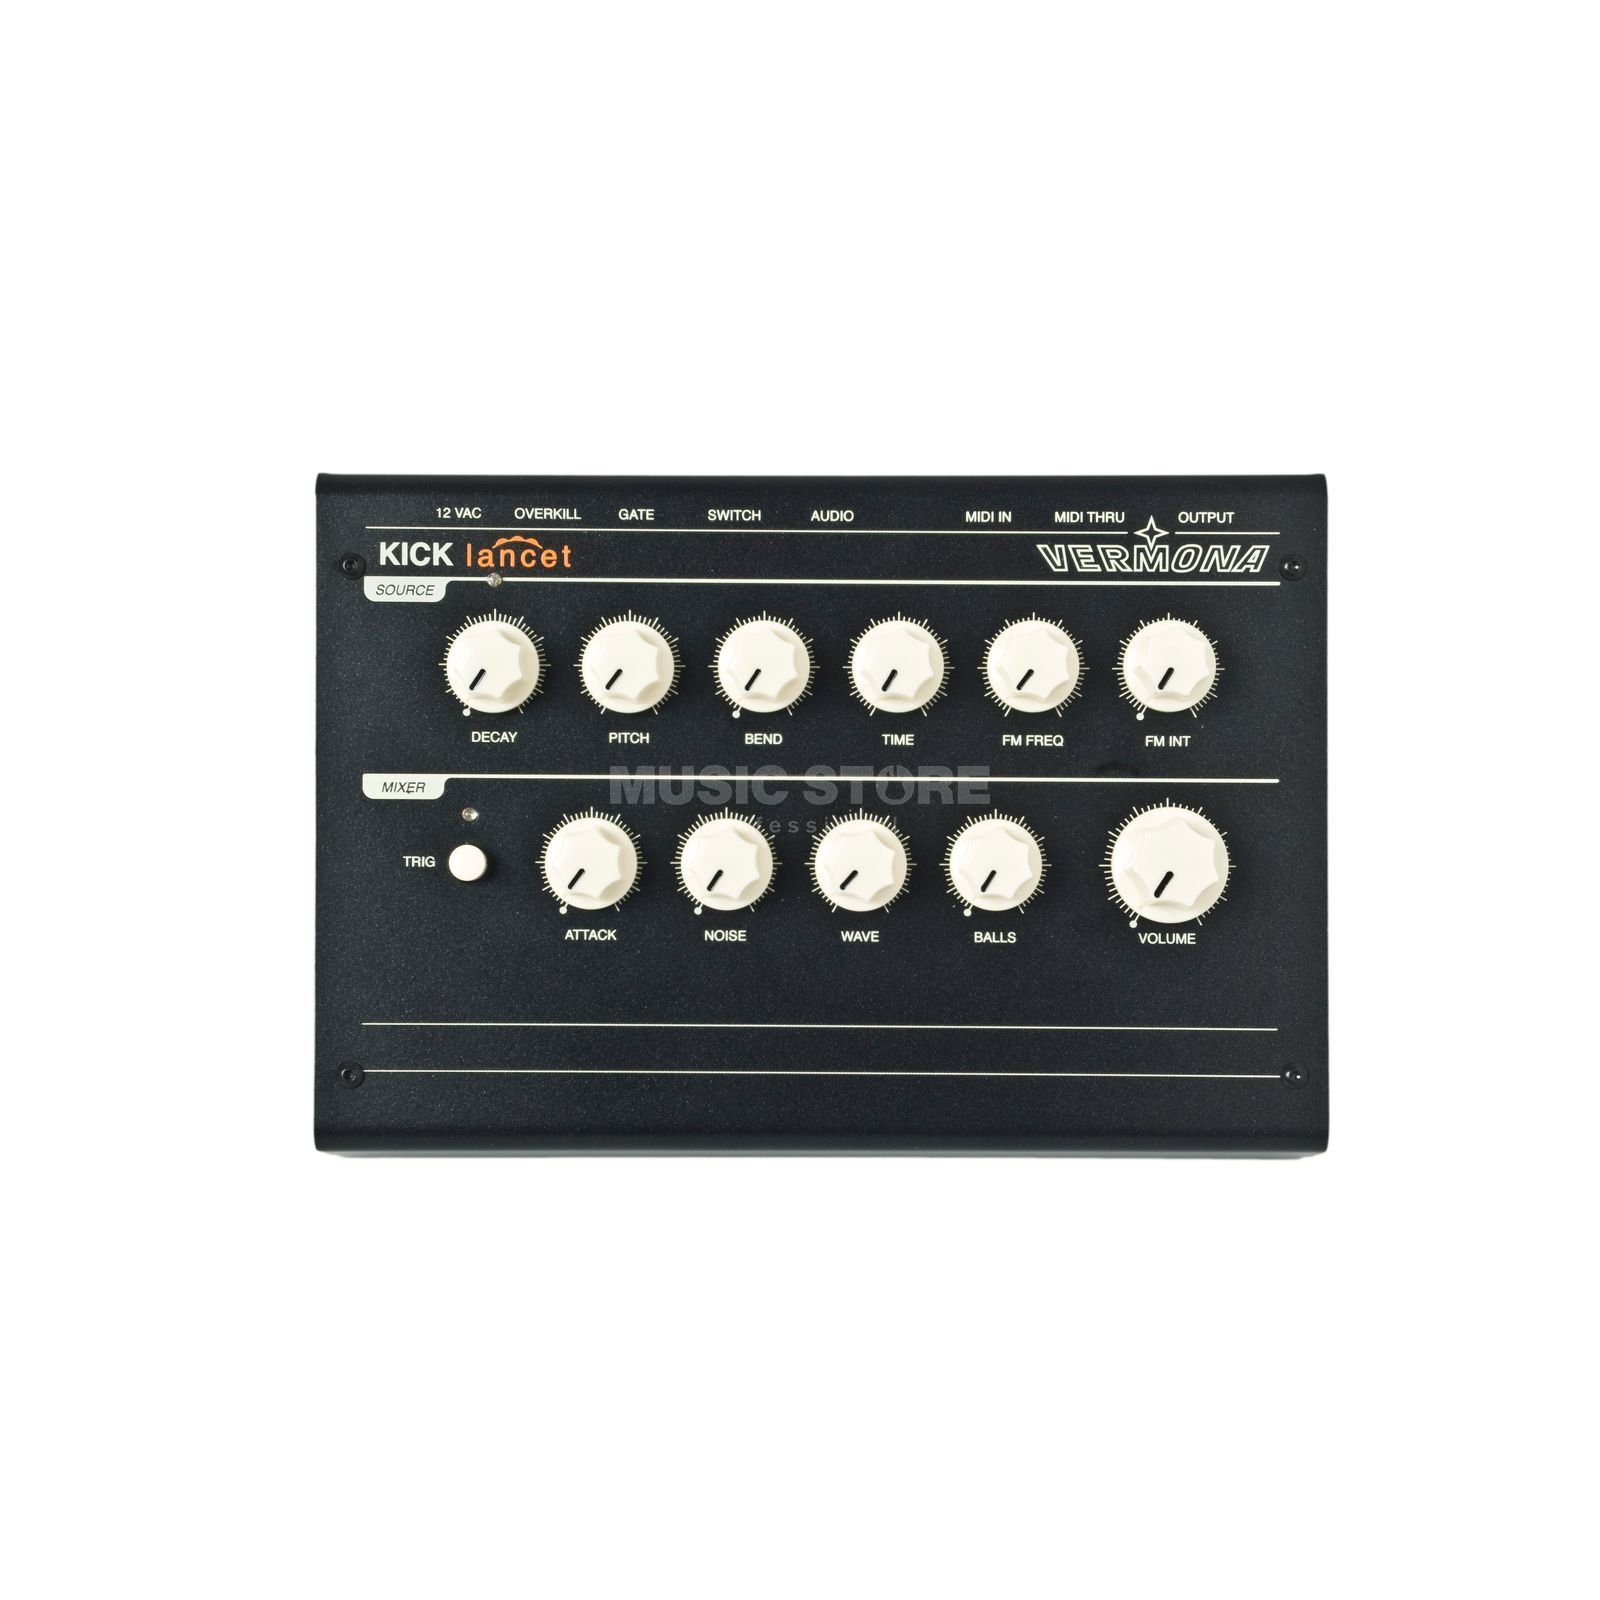 Vermona Kick Lancet Analoger Kickdrum Synth Produktbild